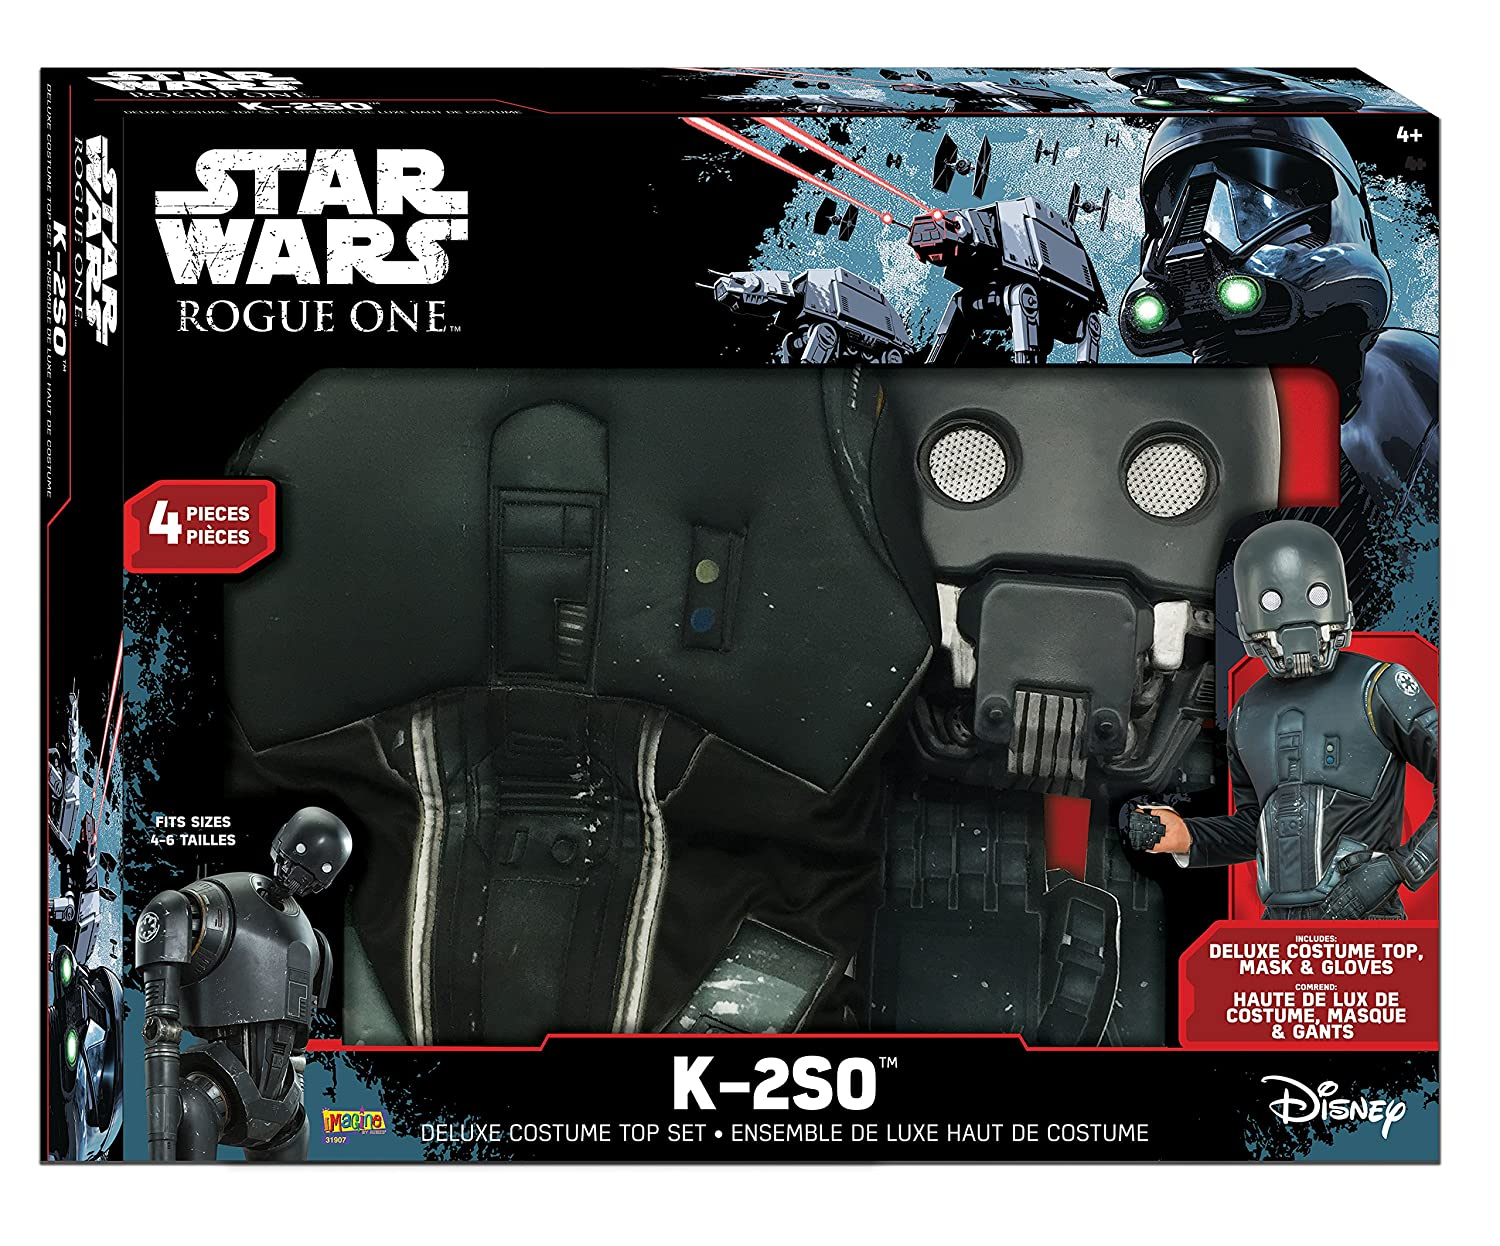 A Star Wars Story Boxed K-2So Deluxe Costume Top Set Imagine by Rubies Rogue One Small Costume